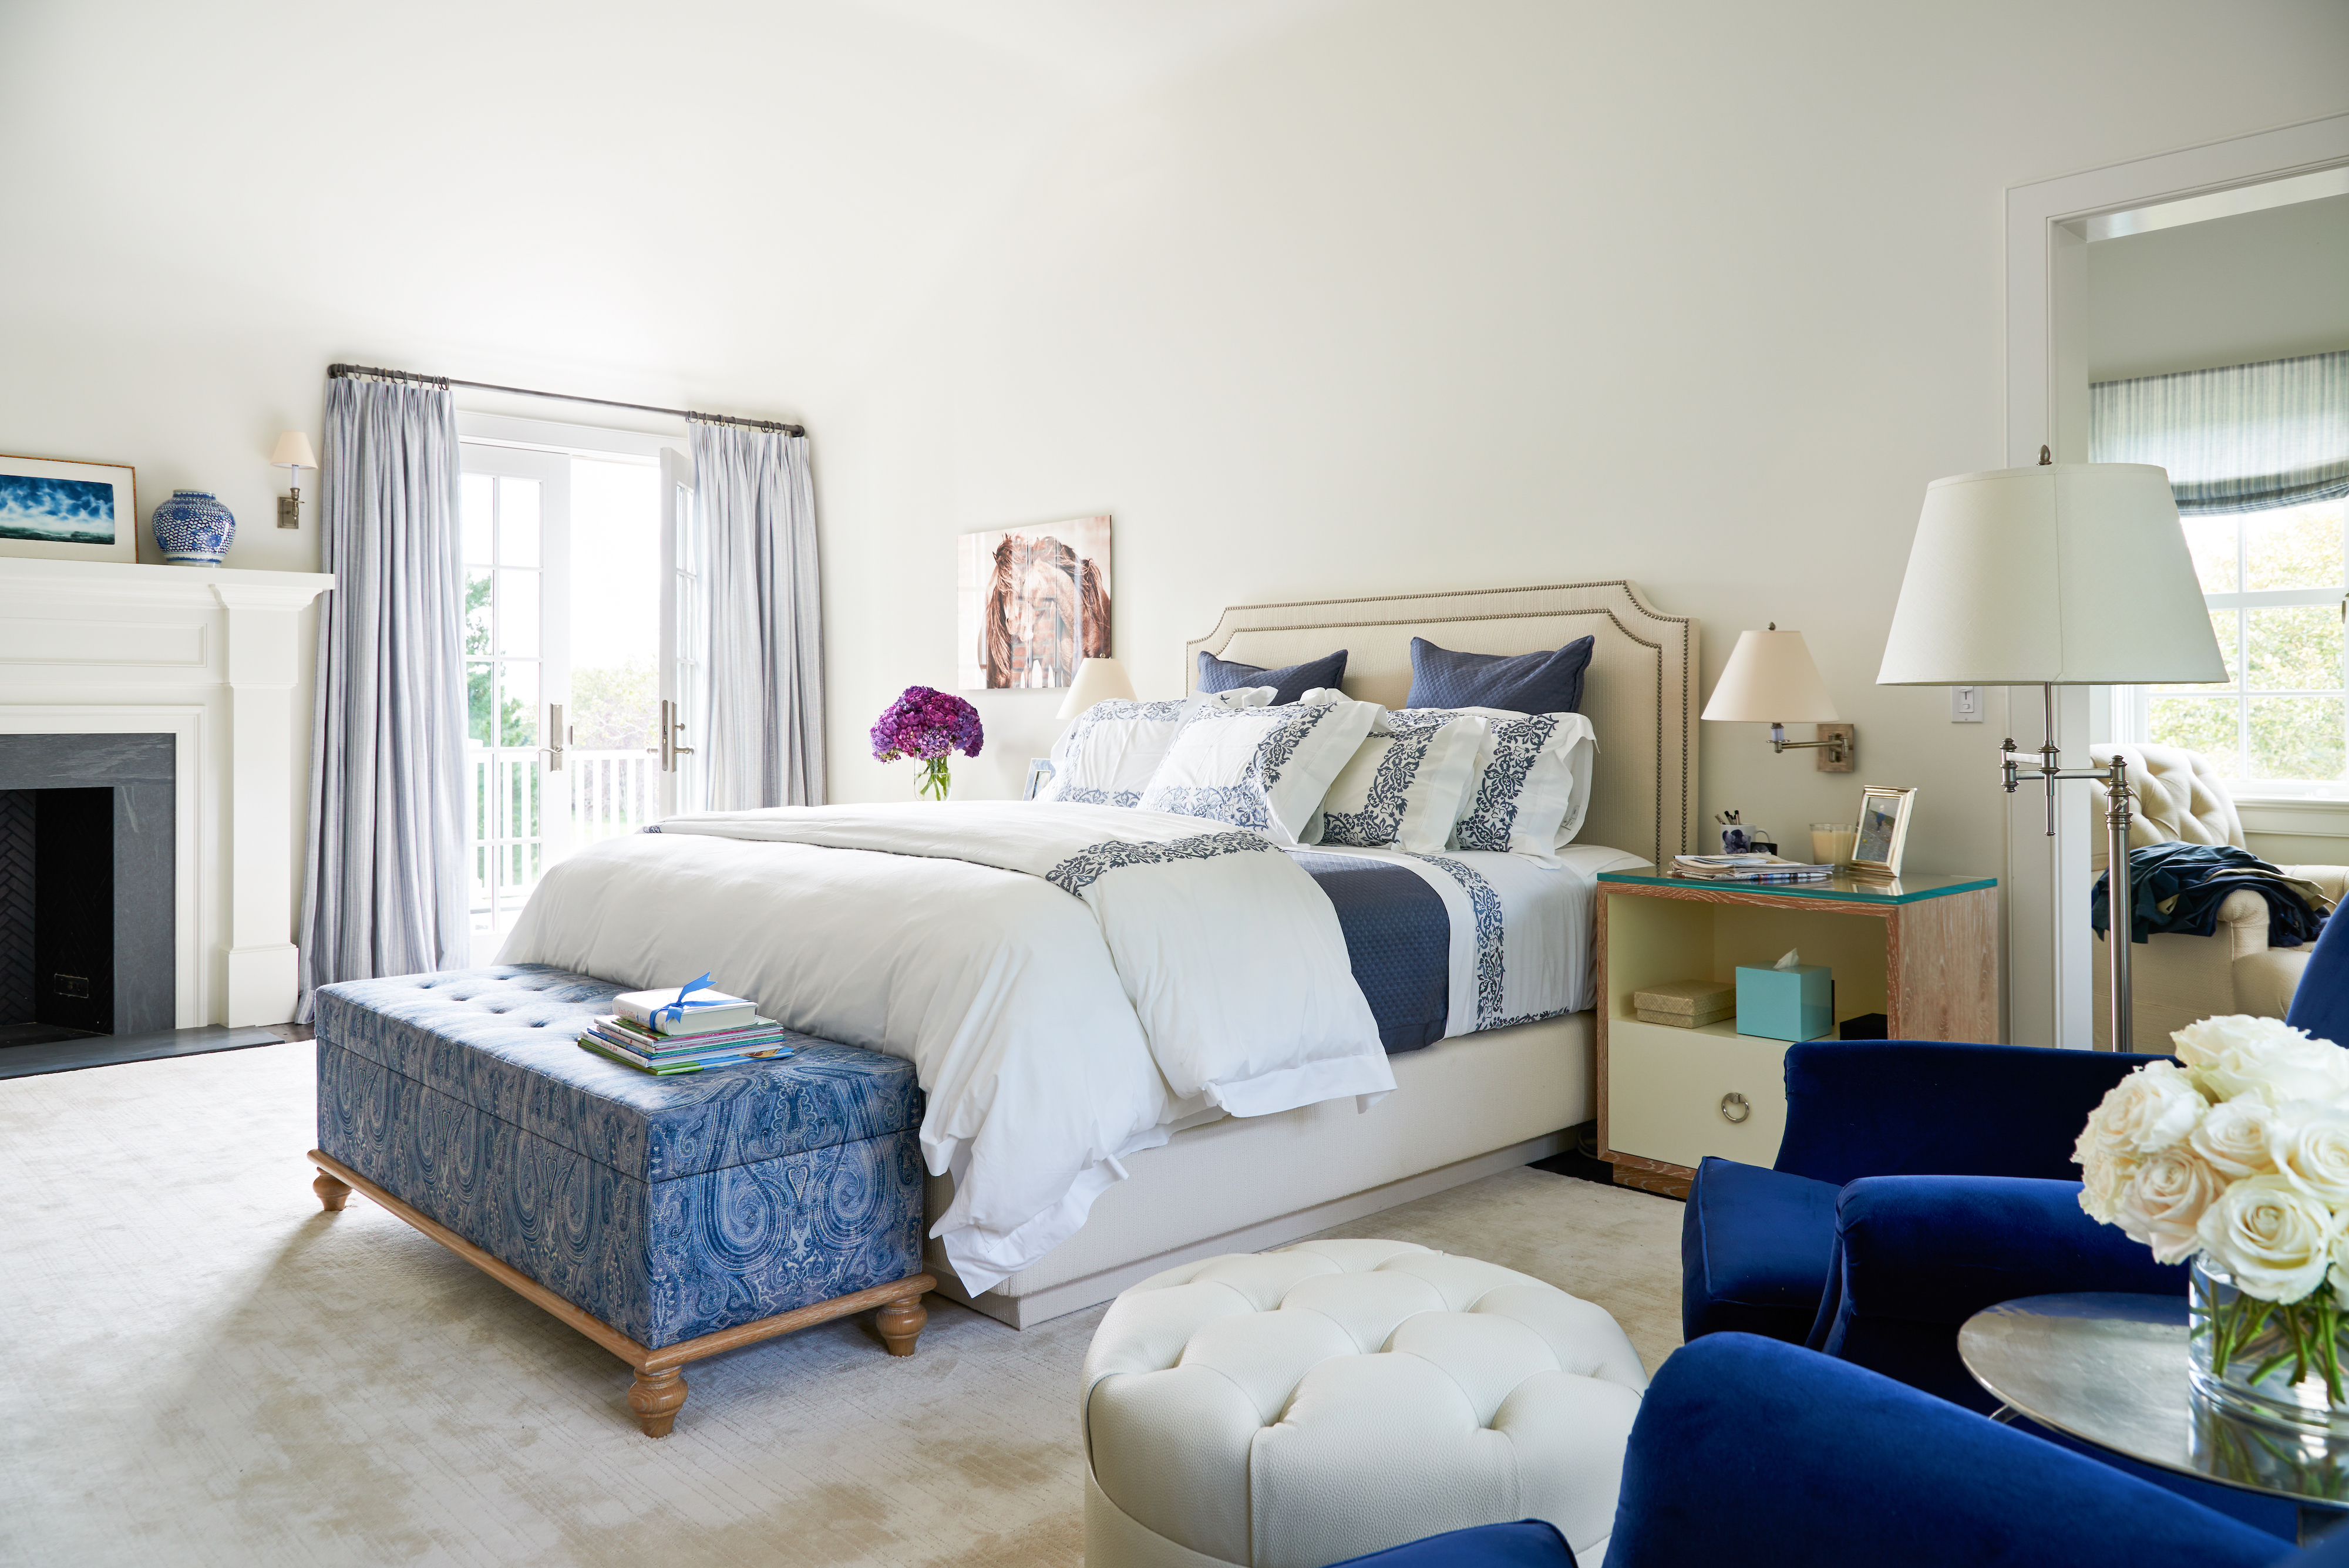 10 best bedroom decor tips how to decorate a bedroom - Things to decorate your room ...